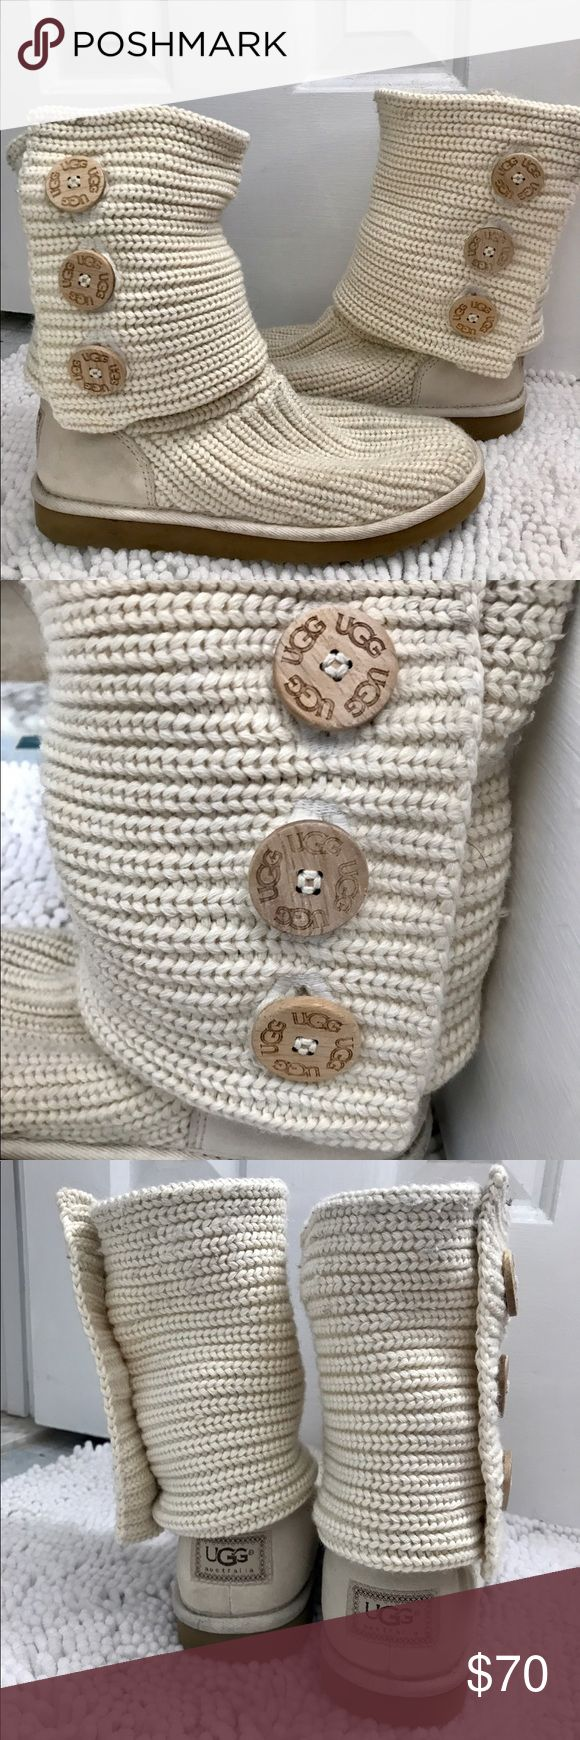 Knit UGG Boots- Women's Size 8 These are from the UGG Cardy knit line in sand color. They are gently worn which is mostly visible on the soles and suede on the back near the UGG logo. These are perfect for the spring! Very lightweight and comfortable, only the sole of the boot is lined with sheepskin. They also fold down or up easily and match pretty much everything. Purchased last season for $150. Reasonable offers will be accepted :) thanks for looking! UGG Shoes Ankle Boots & Booties